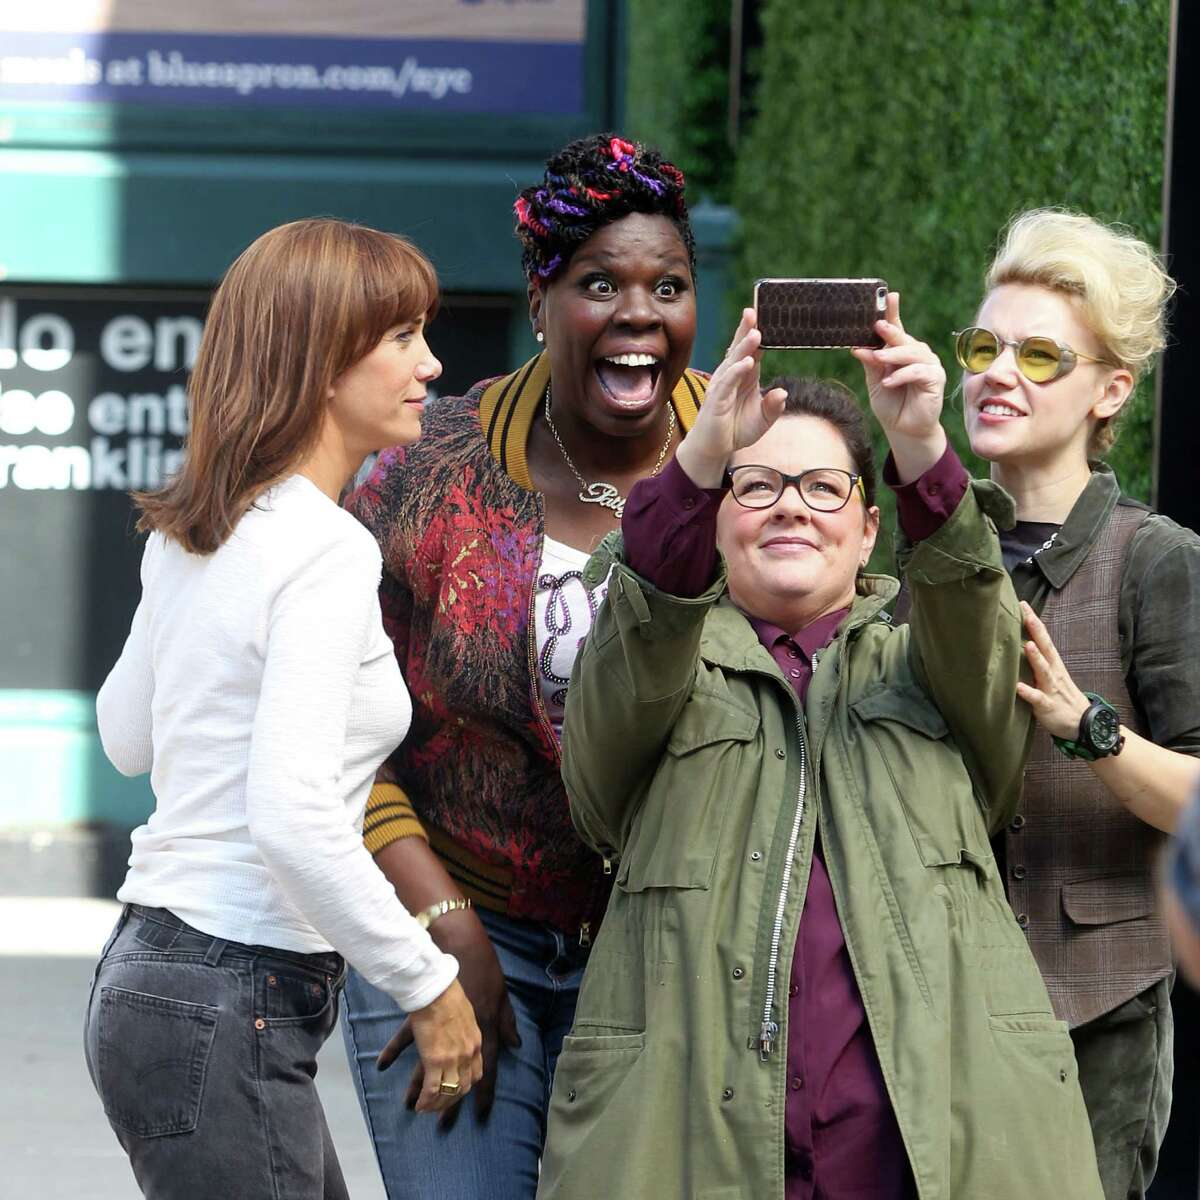 """Melissa McCarthy takes a selfie with, from left, Kristen Wiig, Leslie Jones and Kate McKinnon in a break in the action on the set of the new """"Ghostbusters."""""""